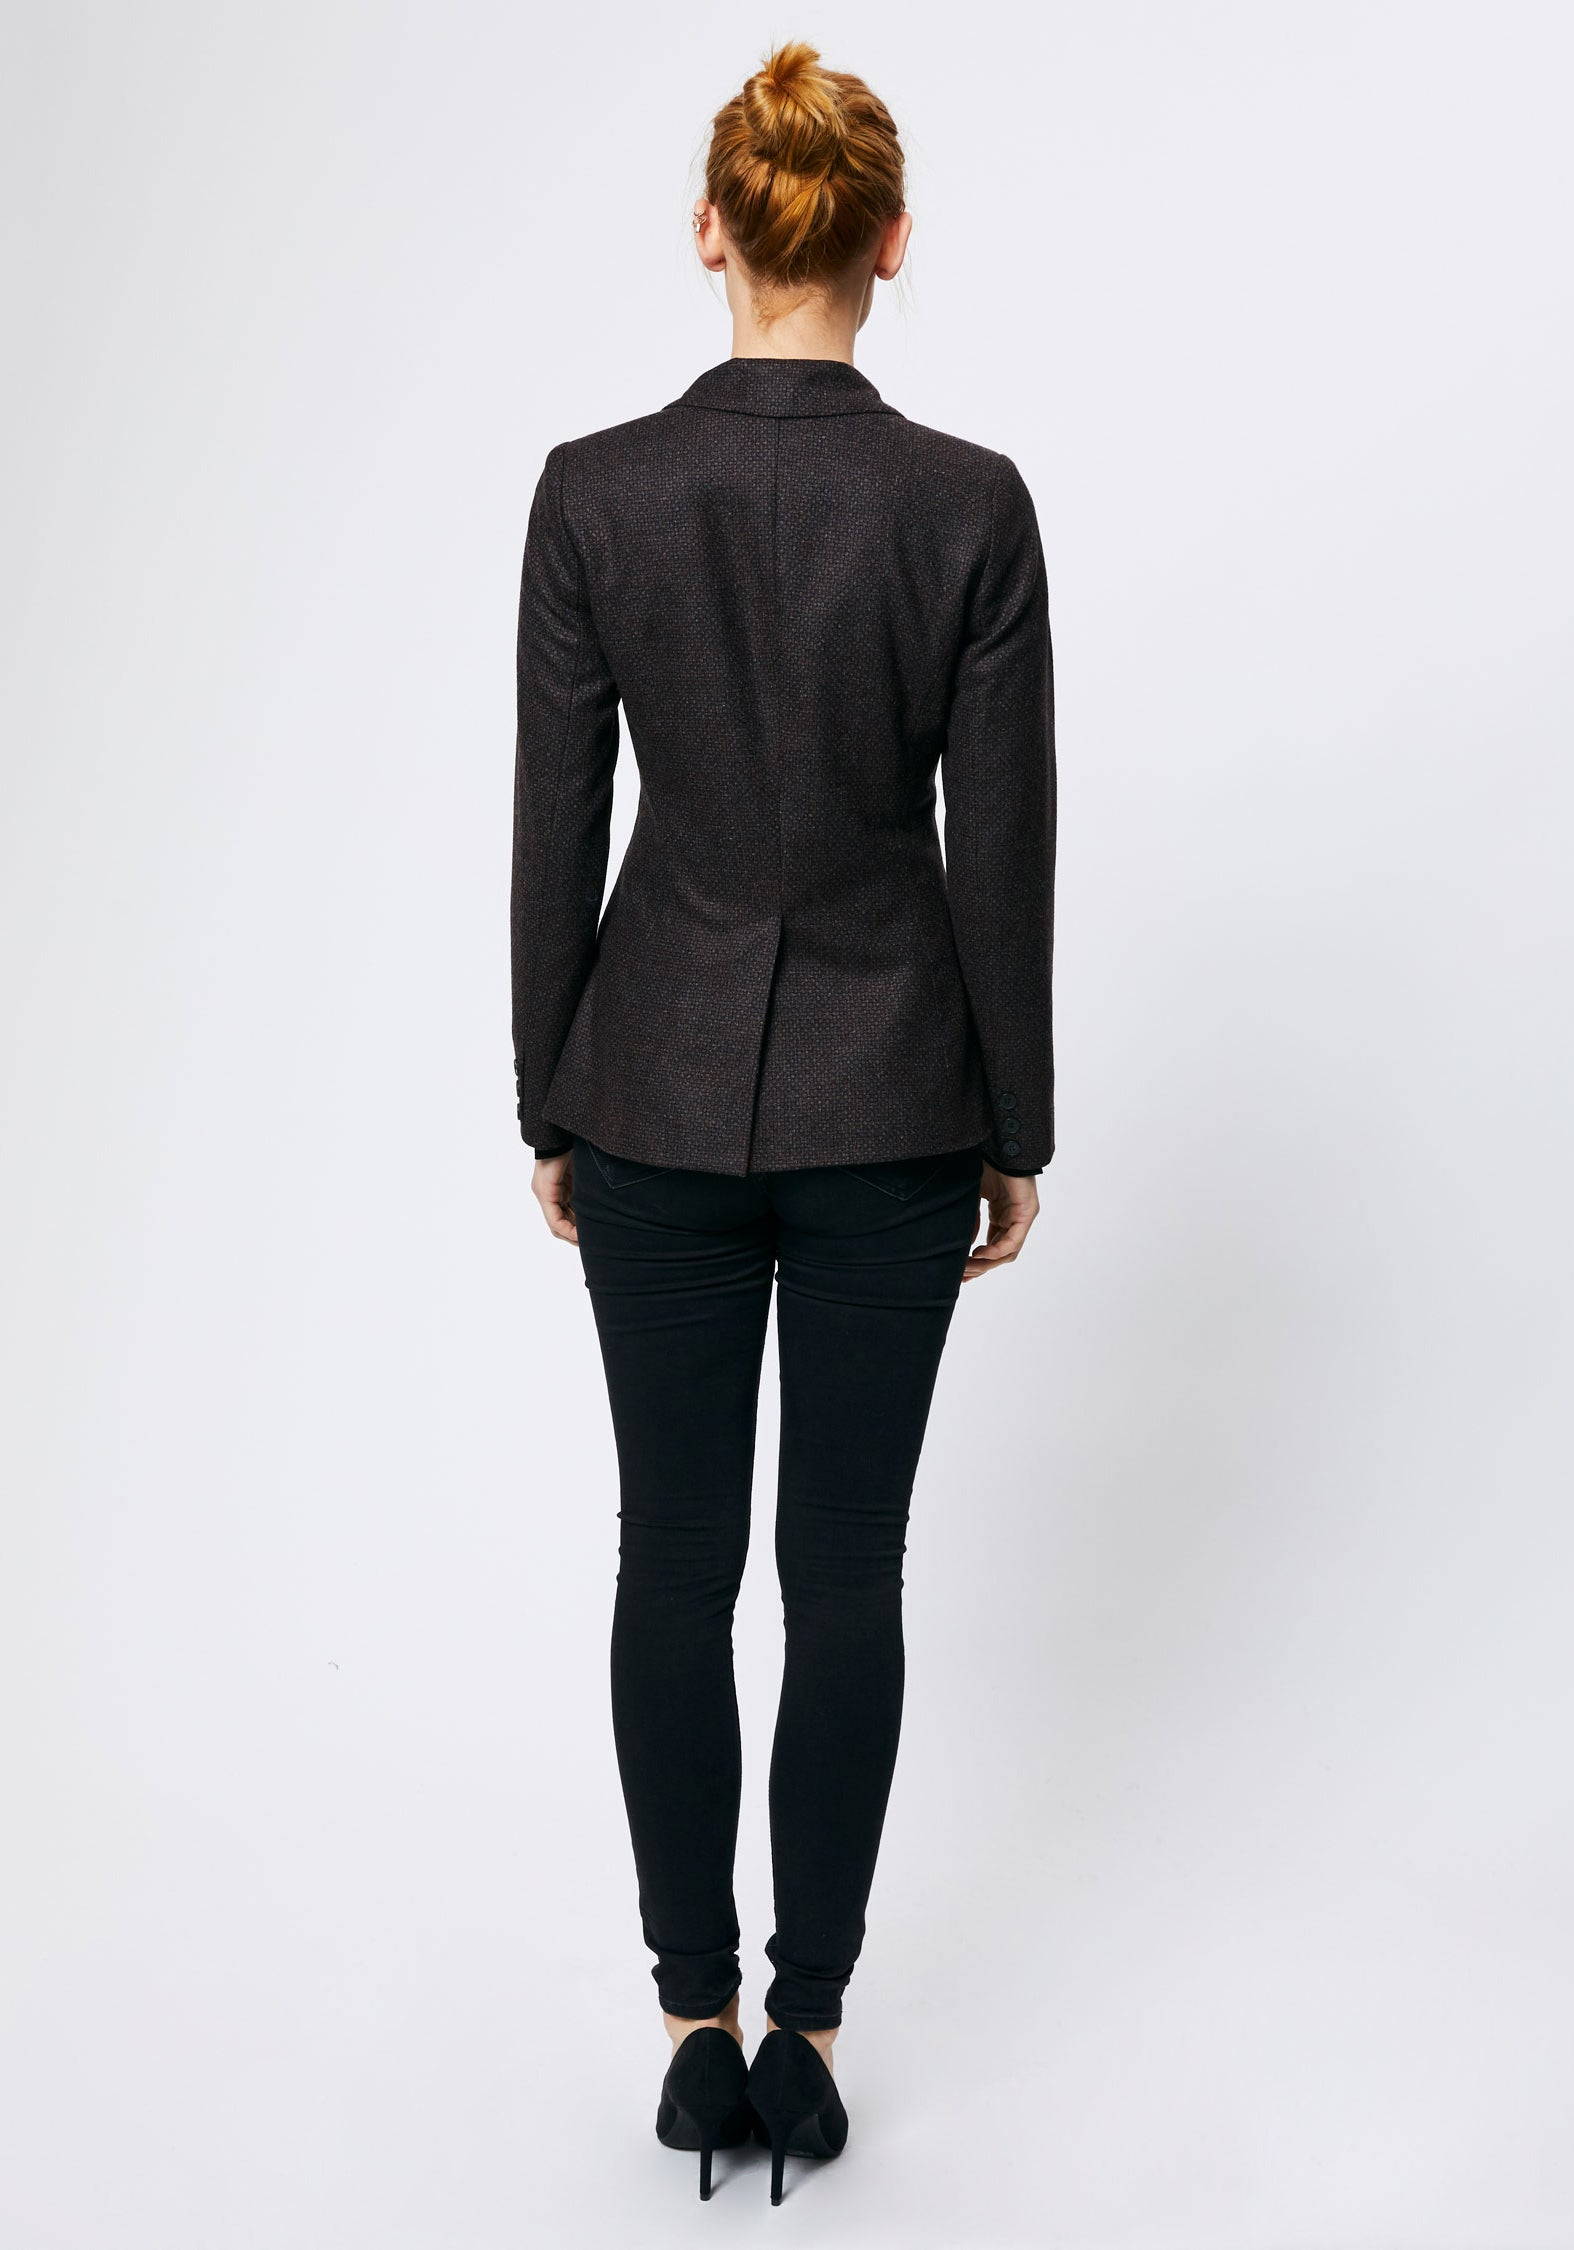 Phene Jacket in Black Wool